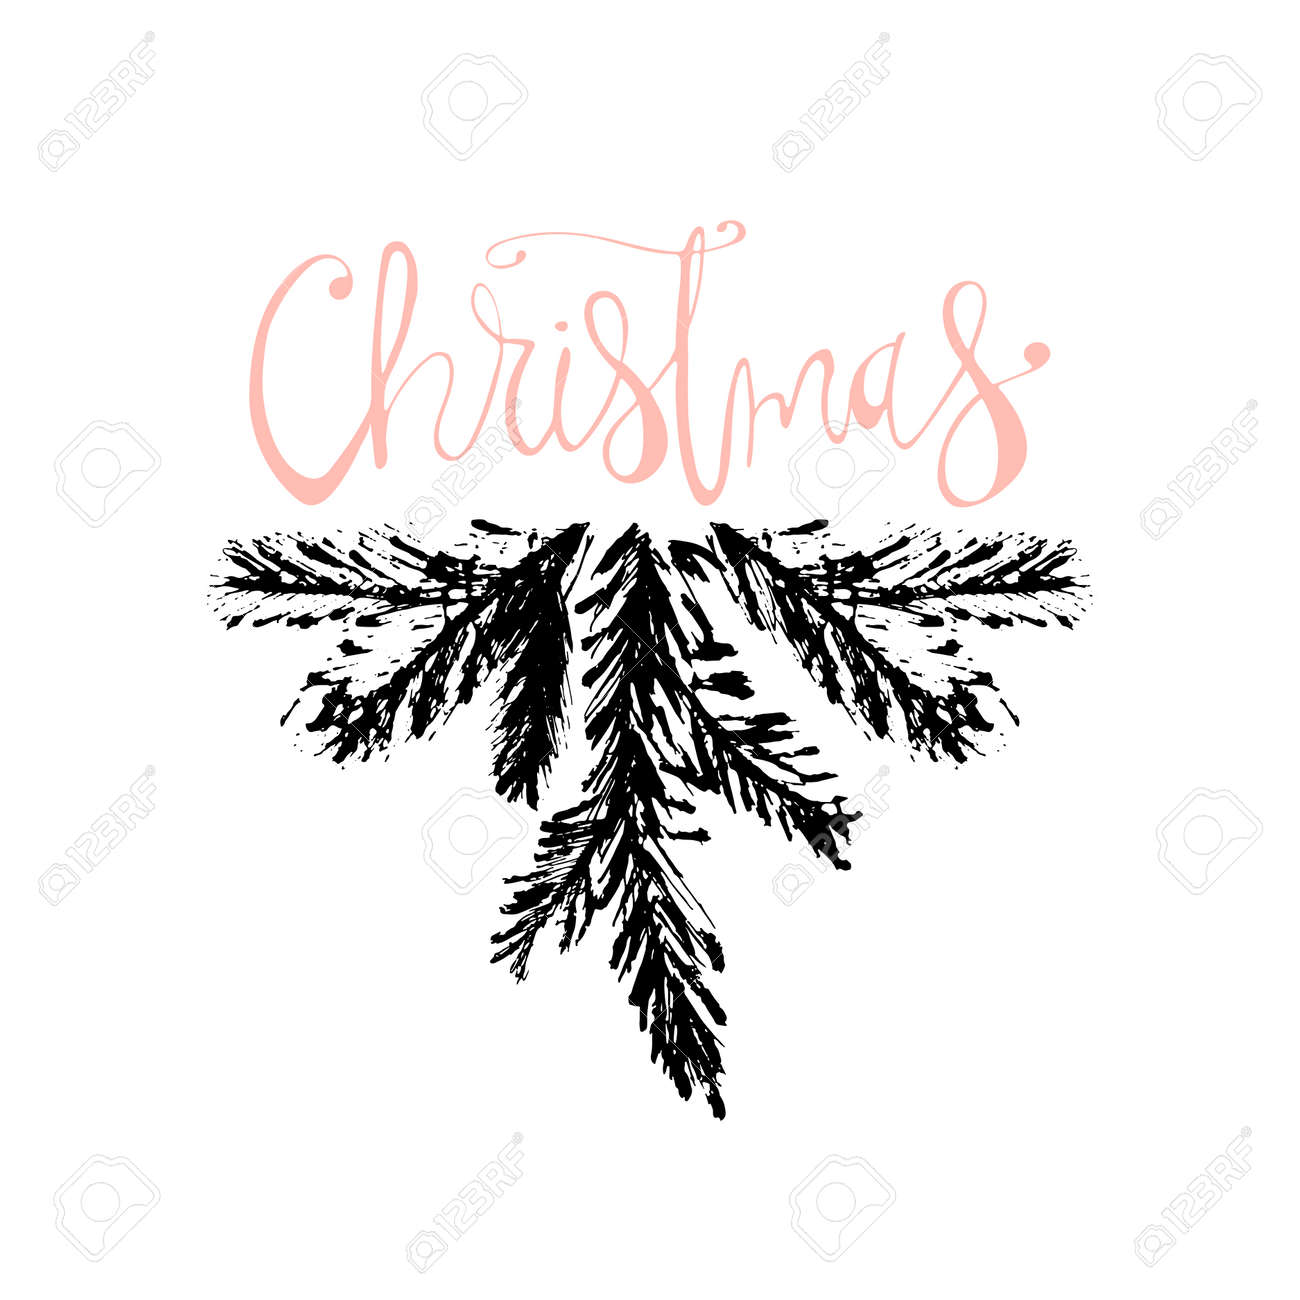 Merry Christmas Hand Drawn Christmas Tree Branch And Lettering ...